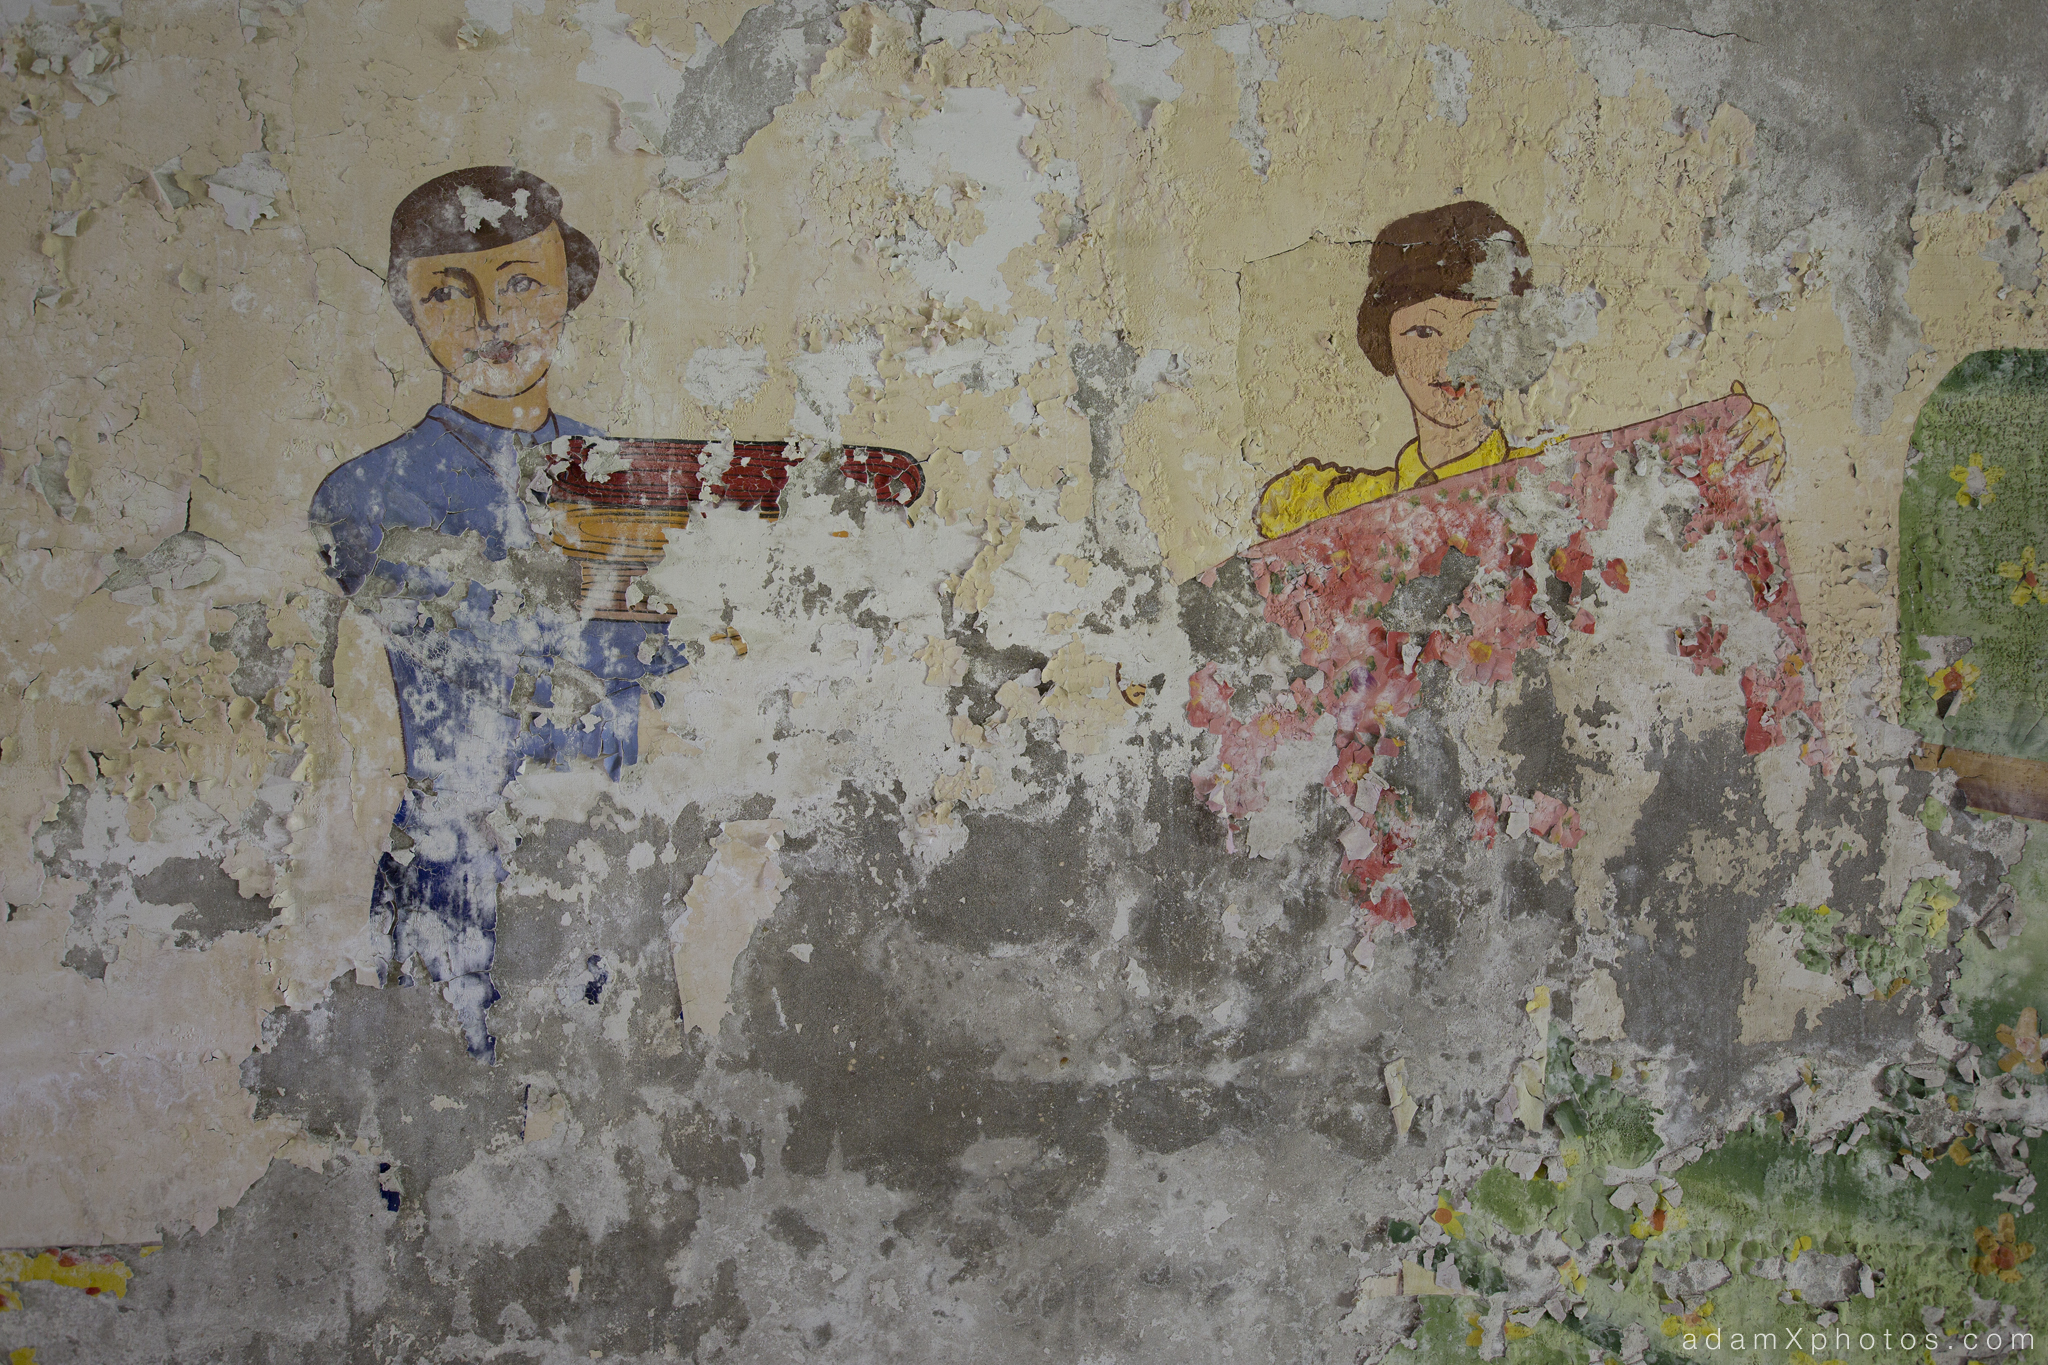 Adam X Urbex Urban Exploration Abandoned Germany Wunsdorf barracks mural wall soviet detail painting